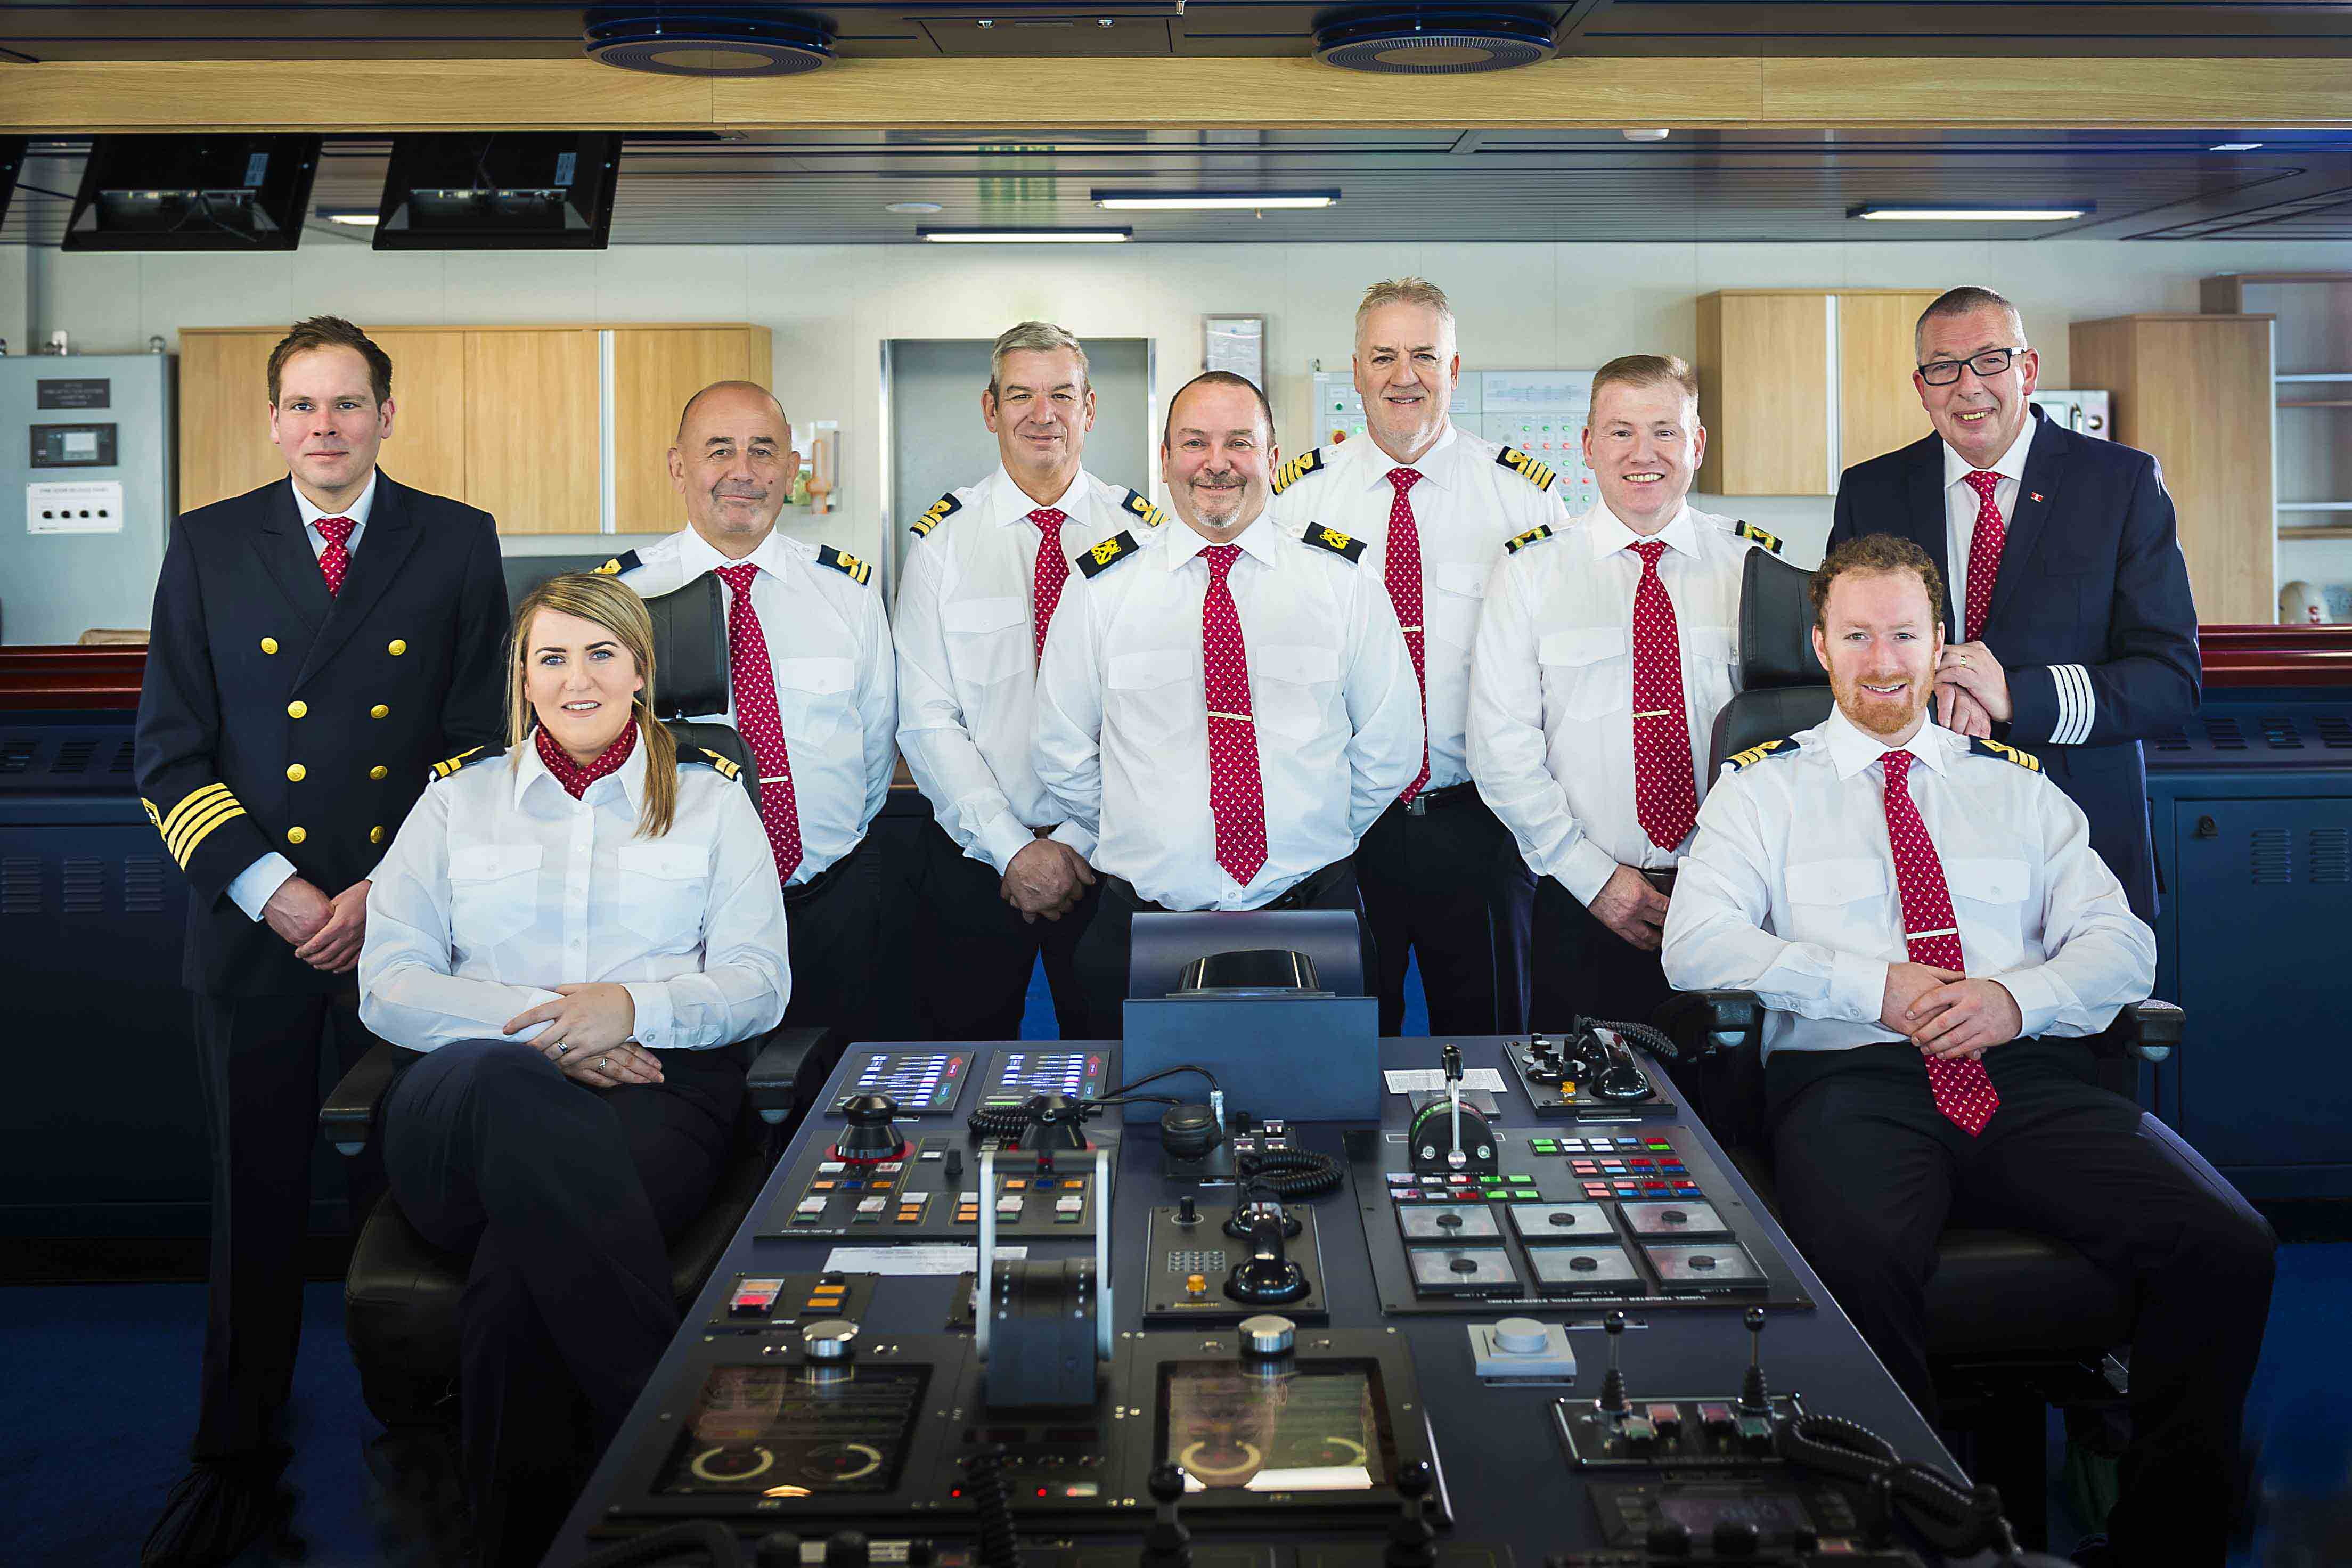 MASTERS OF THE HIGH SEAS: (l-r) Senior Master Matthew Lynch is pictured on board Stena Line's newest ferry Stena Estrid with crew members Cora Bonham, John Thomas, Mark Connell, Ian Grimes, David Morris, Jason Rafferty, Marc Young and Stephen Davies. Captain 'Matt' and his crew are currently steering Stena Estrid on its 10,000 mile journey from the AVIC Weihai Shipyard in China, where it was built, to the Irish Sea where it will start service on the Holyhead to Dublin route in January.